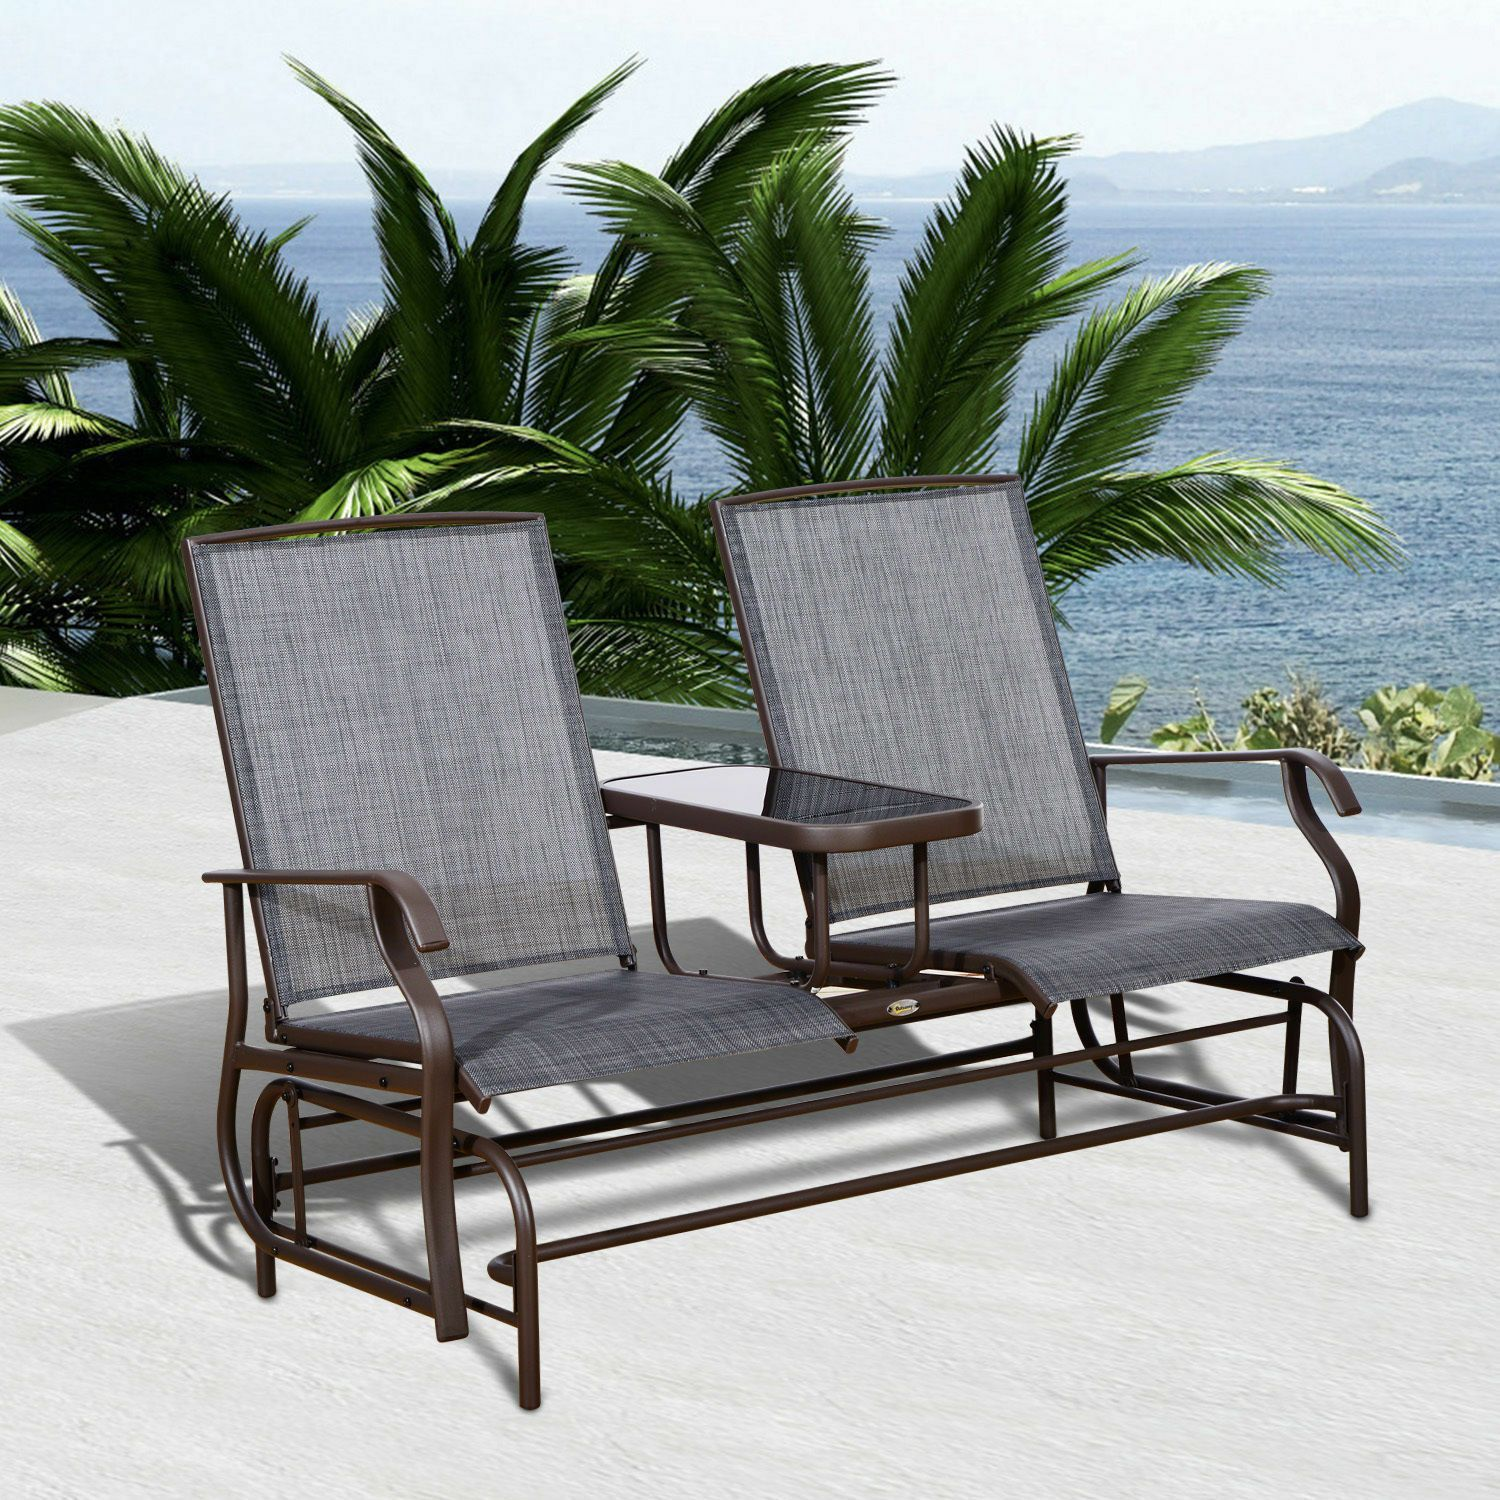 patio sunroom glider rocking chair bench loveseat 2 person rocker deck outdoor furniture rocking function sling fabric sturdy frame